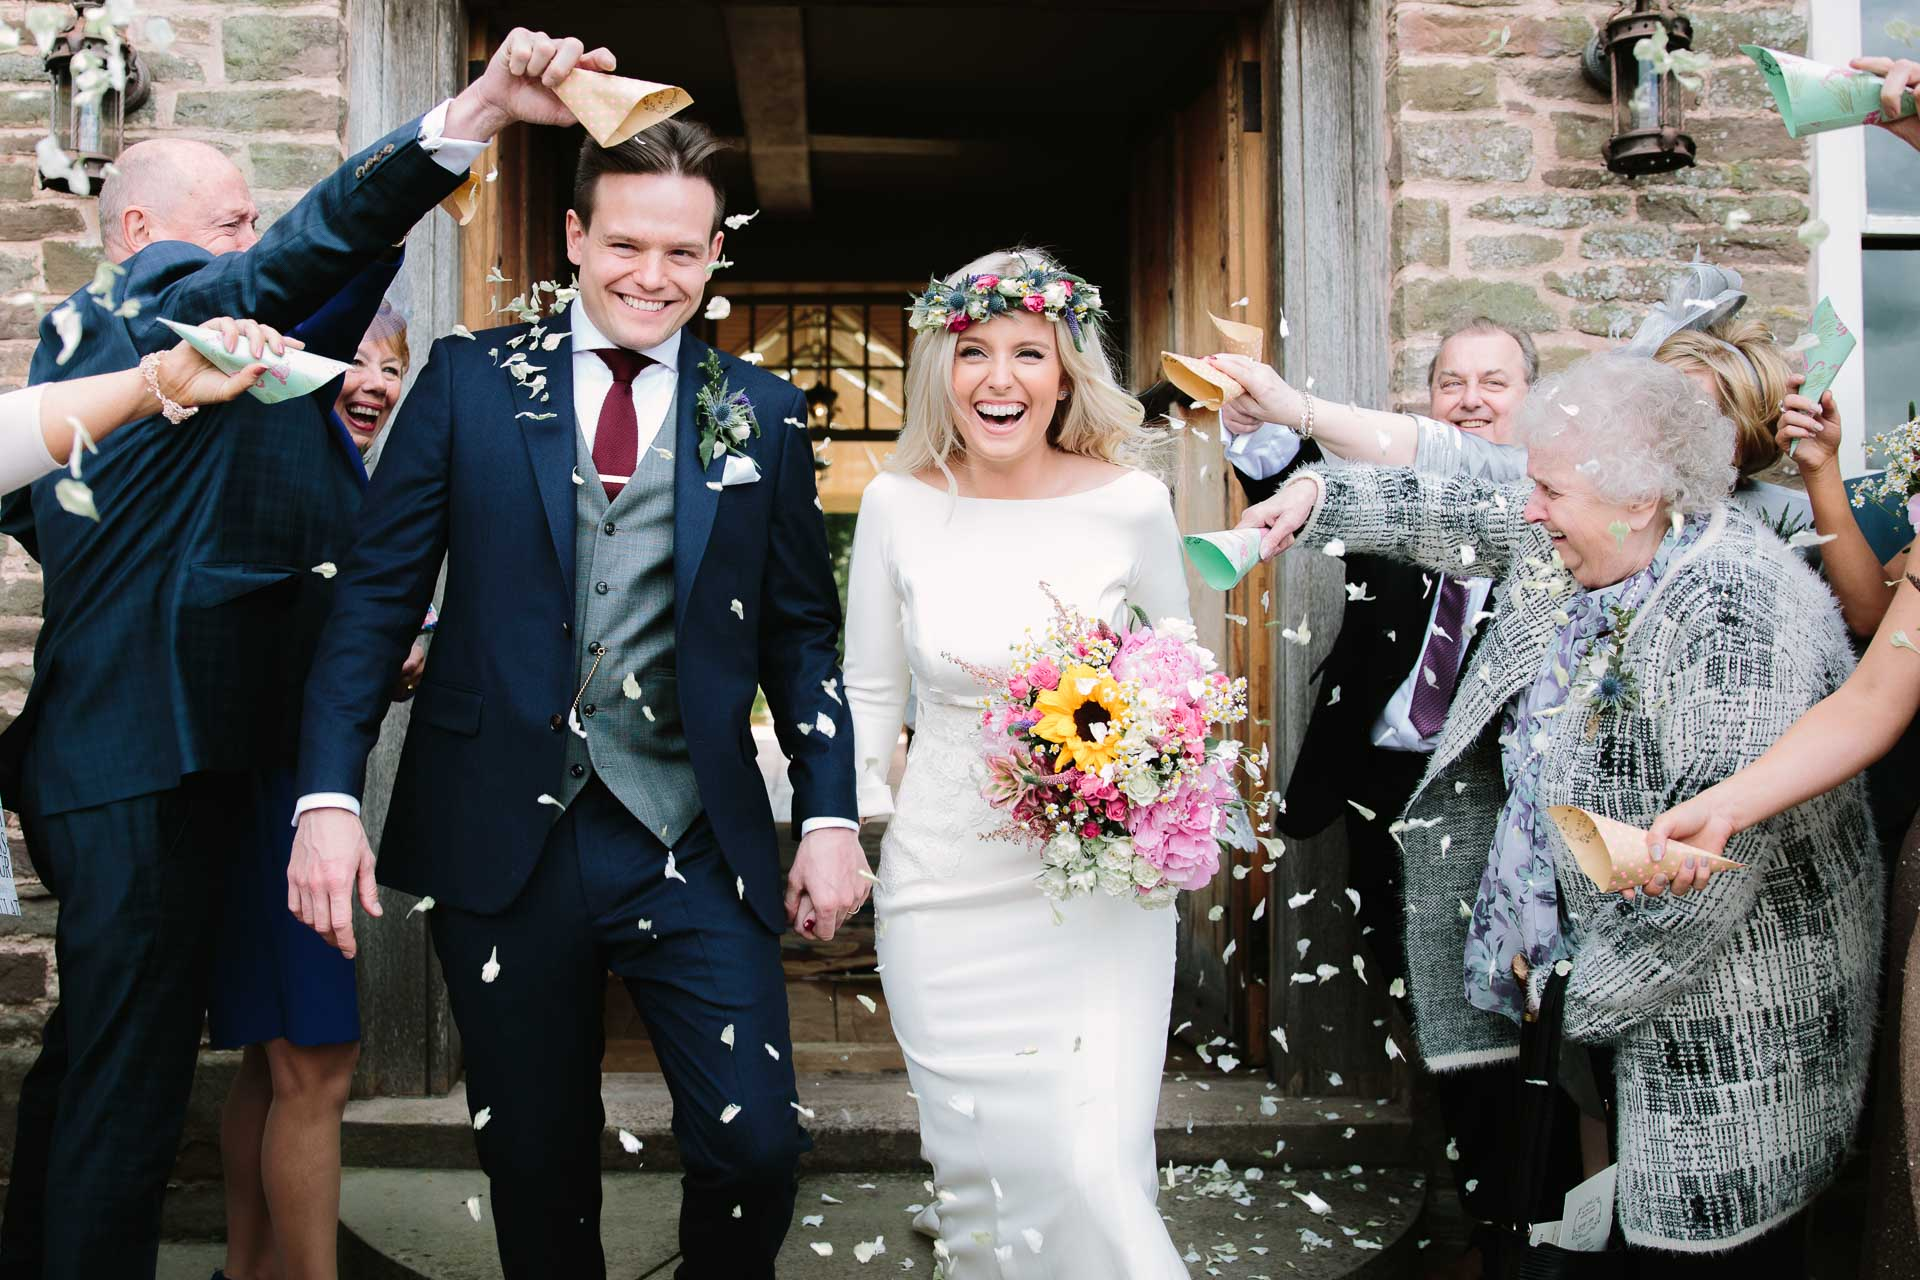 Wedding Confetti - by philippajamesphotography Oxford weddings